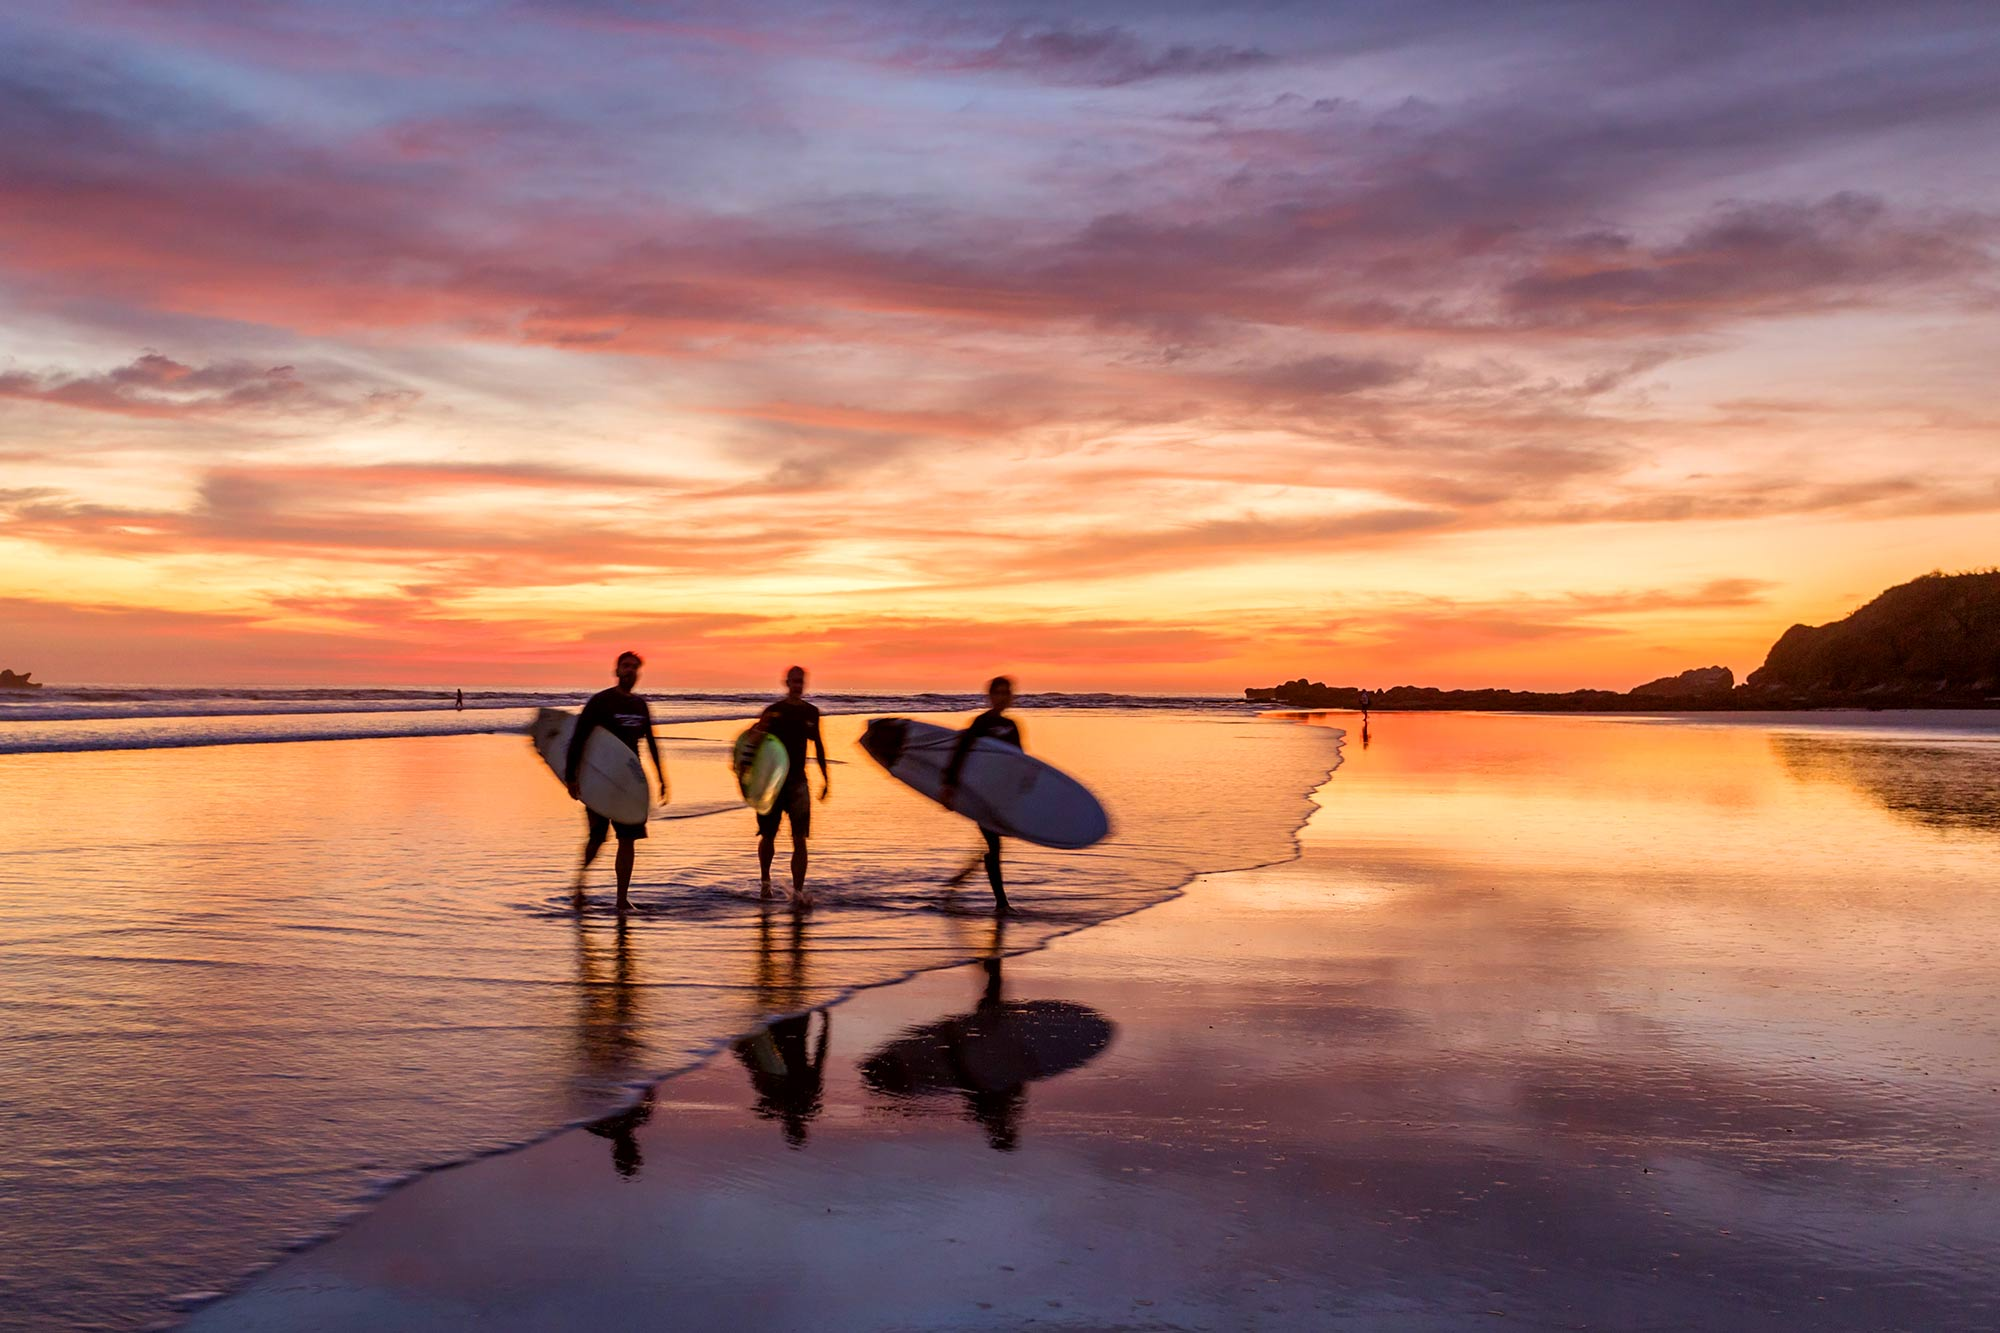 surfers-at-sunset-walking-on-beach--costa-rica-578363125-597a6810845b3400110e7da1